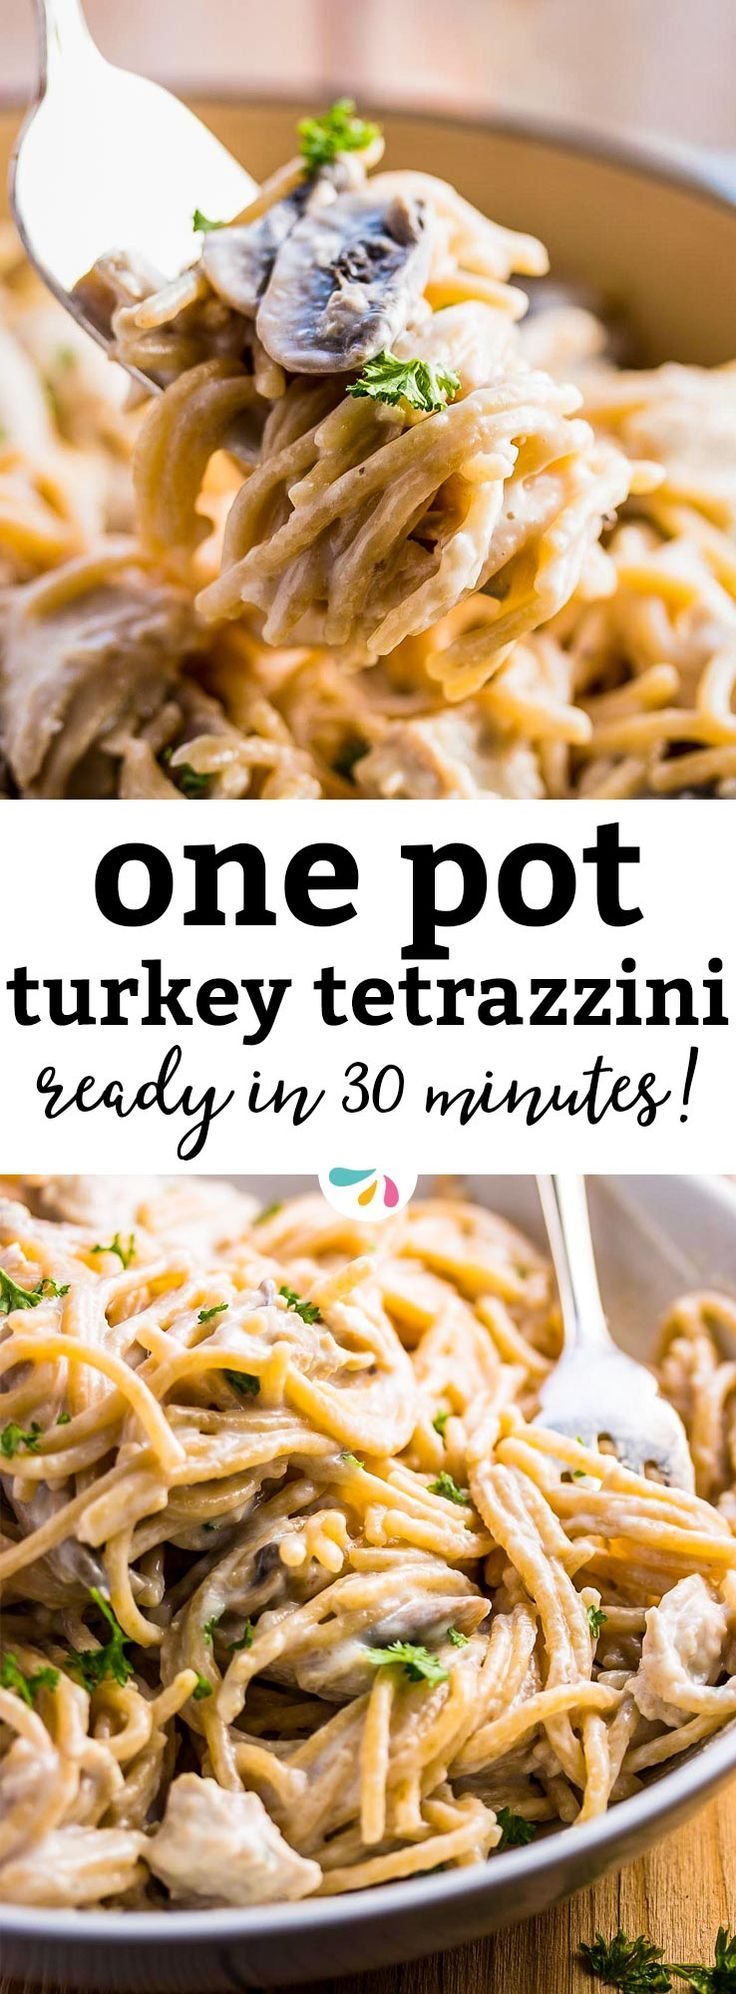 Relax your dinner time with this 30 Minute Healthy Stovetop Turkey Tetrazzini recipe. It's quick and easy to make and is sure to become a new family favorite. Skinny ingredient swap make it a lighter choice for dinners this fall. It's perfect to use up Thanksgiving leftovers! A simple recipe without baking and made in a single pot - even the pasta gets cooked right in the sauce! Never ask yourself what's for dinner after the holidays again - you will love this easy weeknight idea.